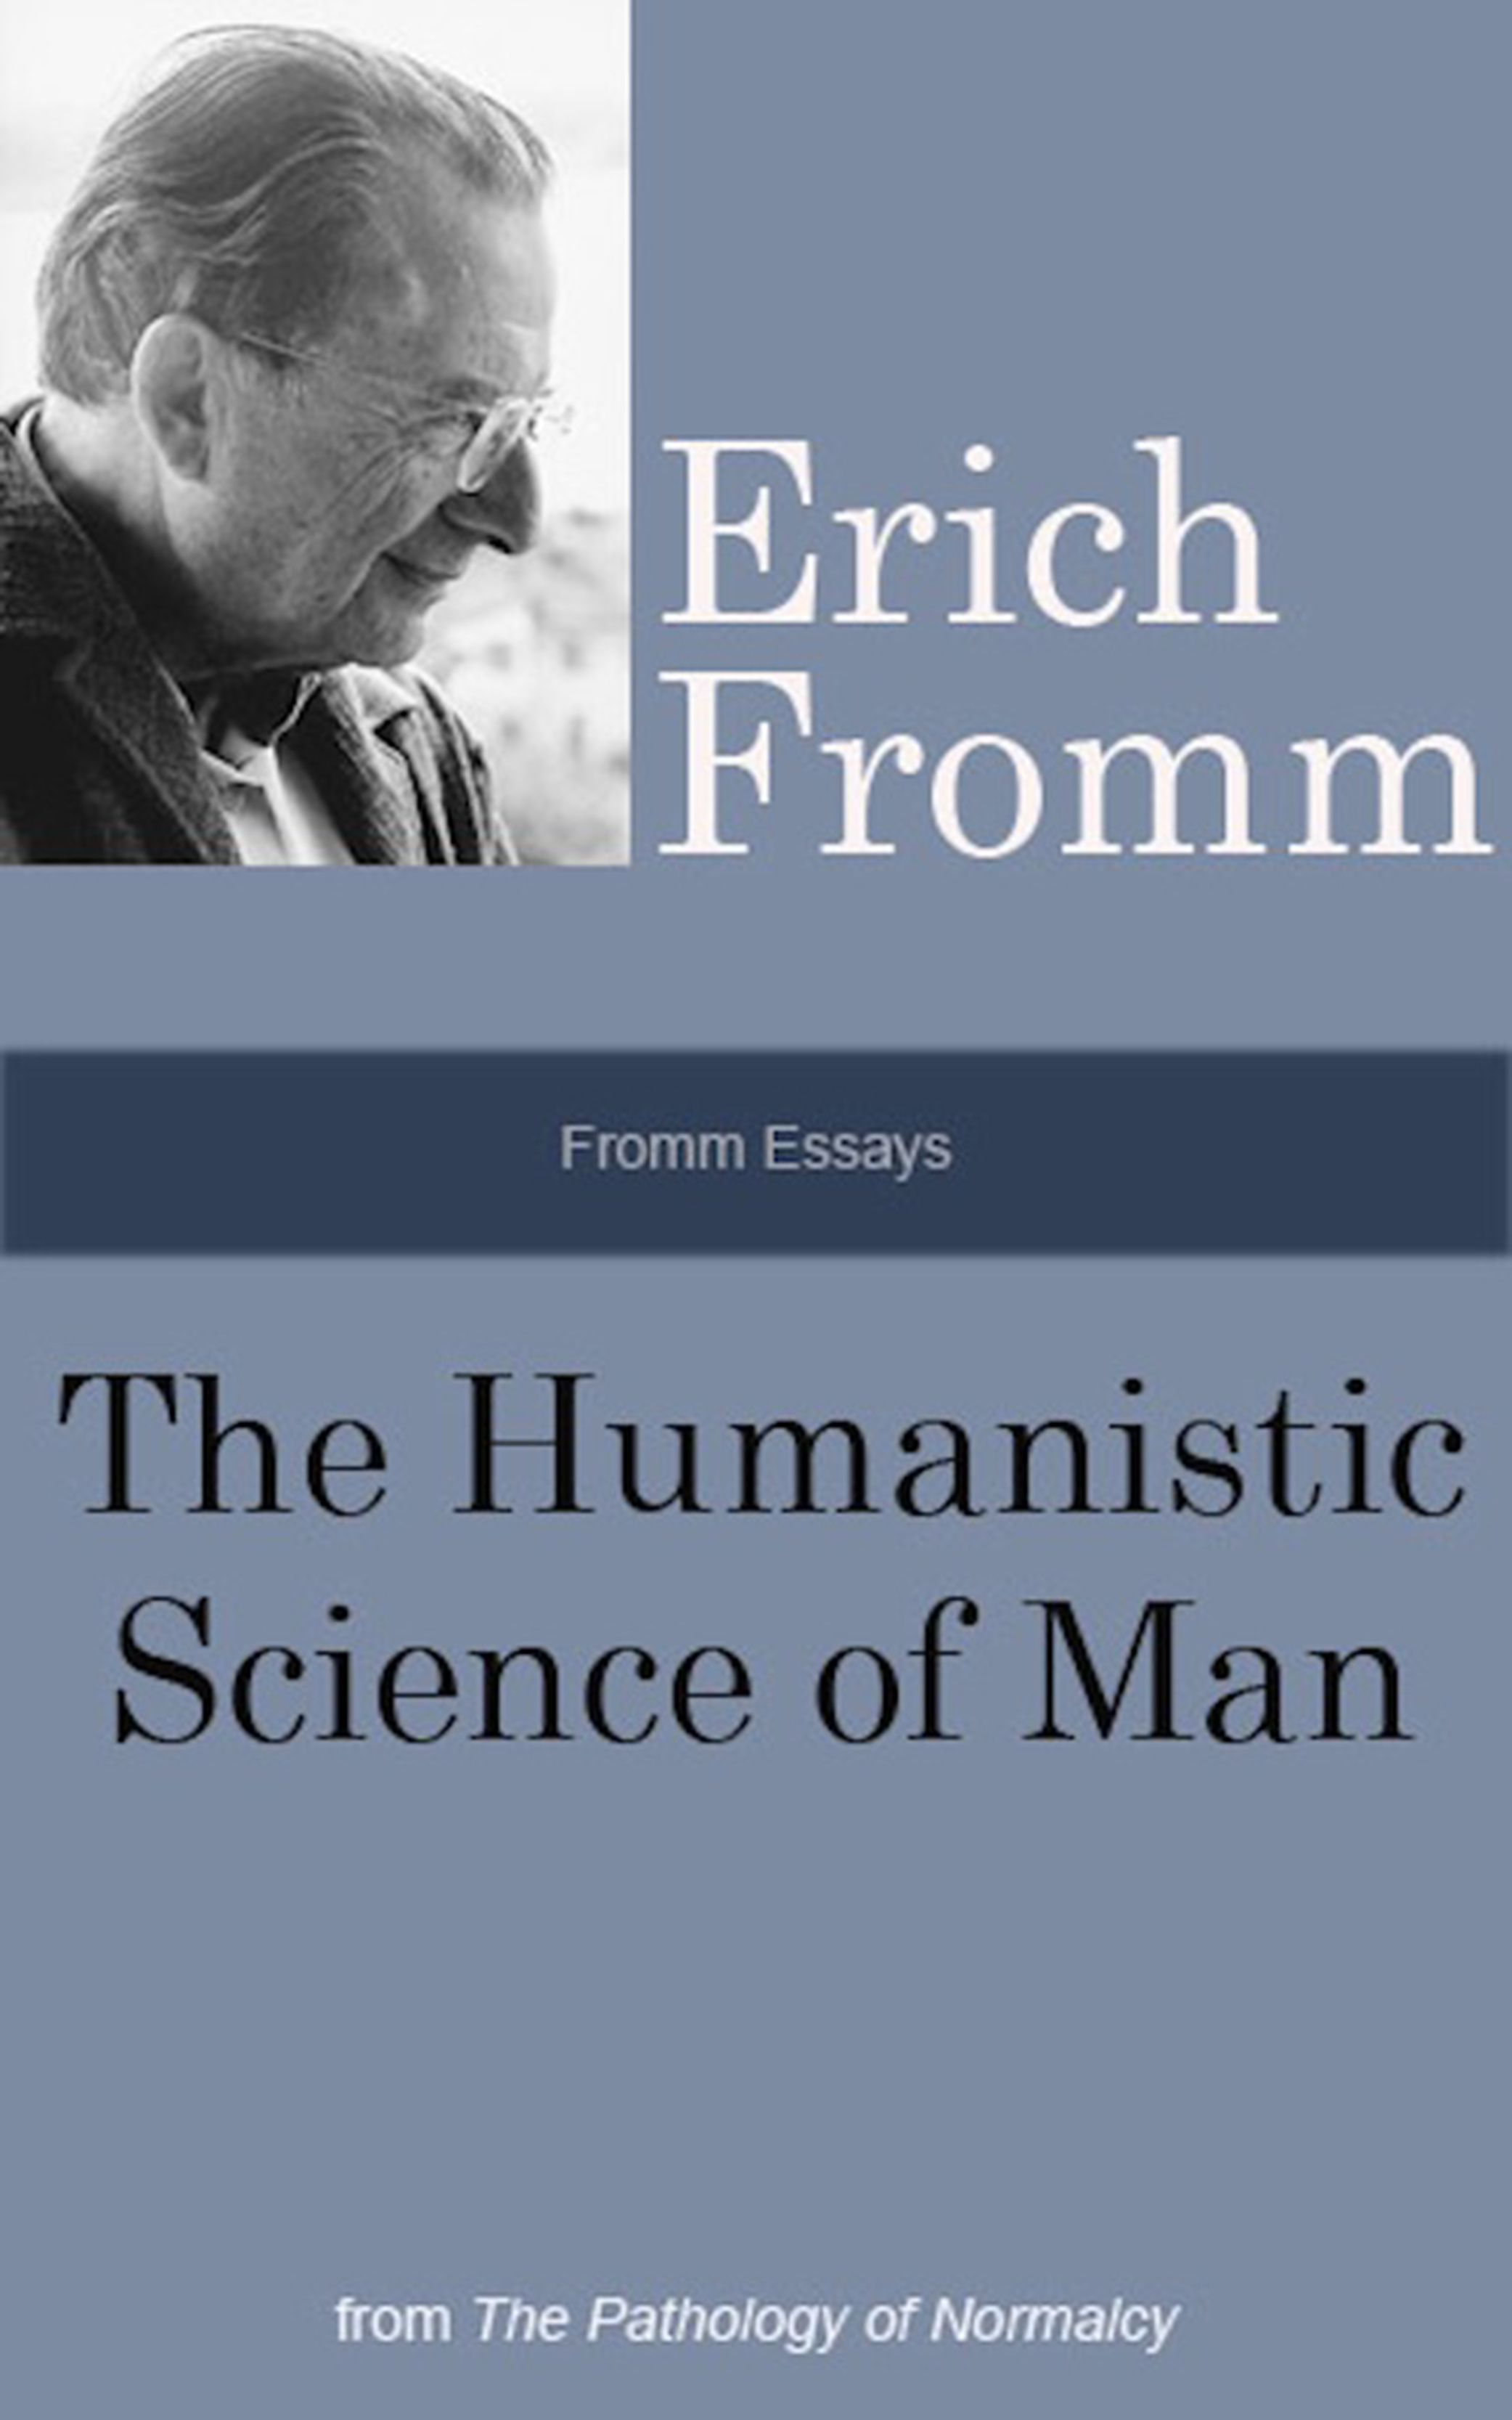 erich fromm essays Free essay: fromm asserts that love is an art, and says that to truly love, in all it's forms, you must possess maturity, self-knowledge and courage many.